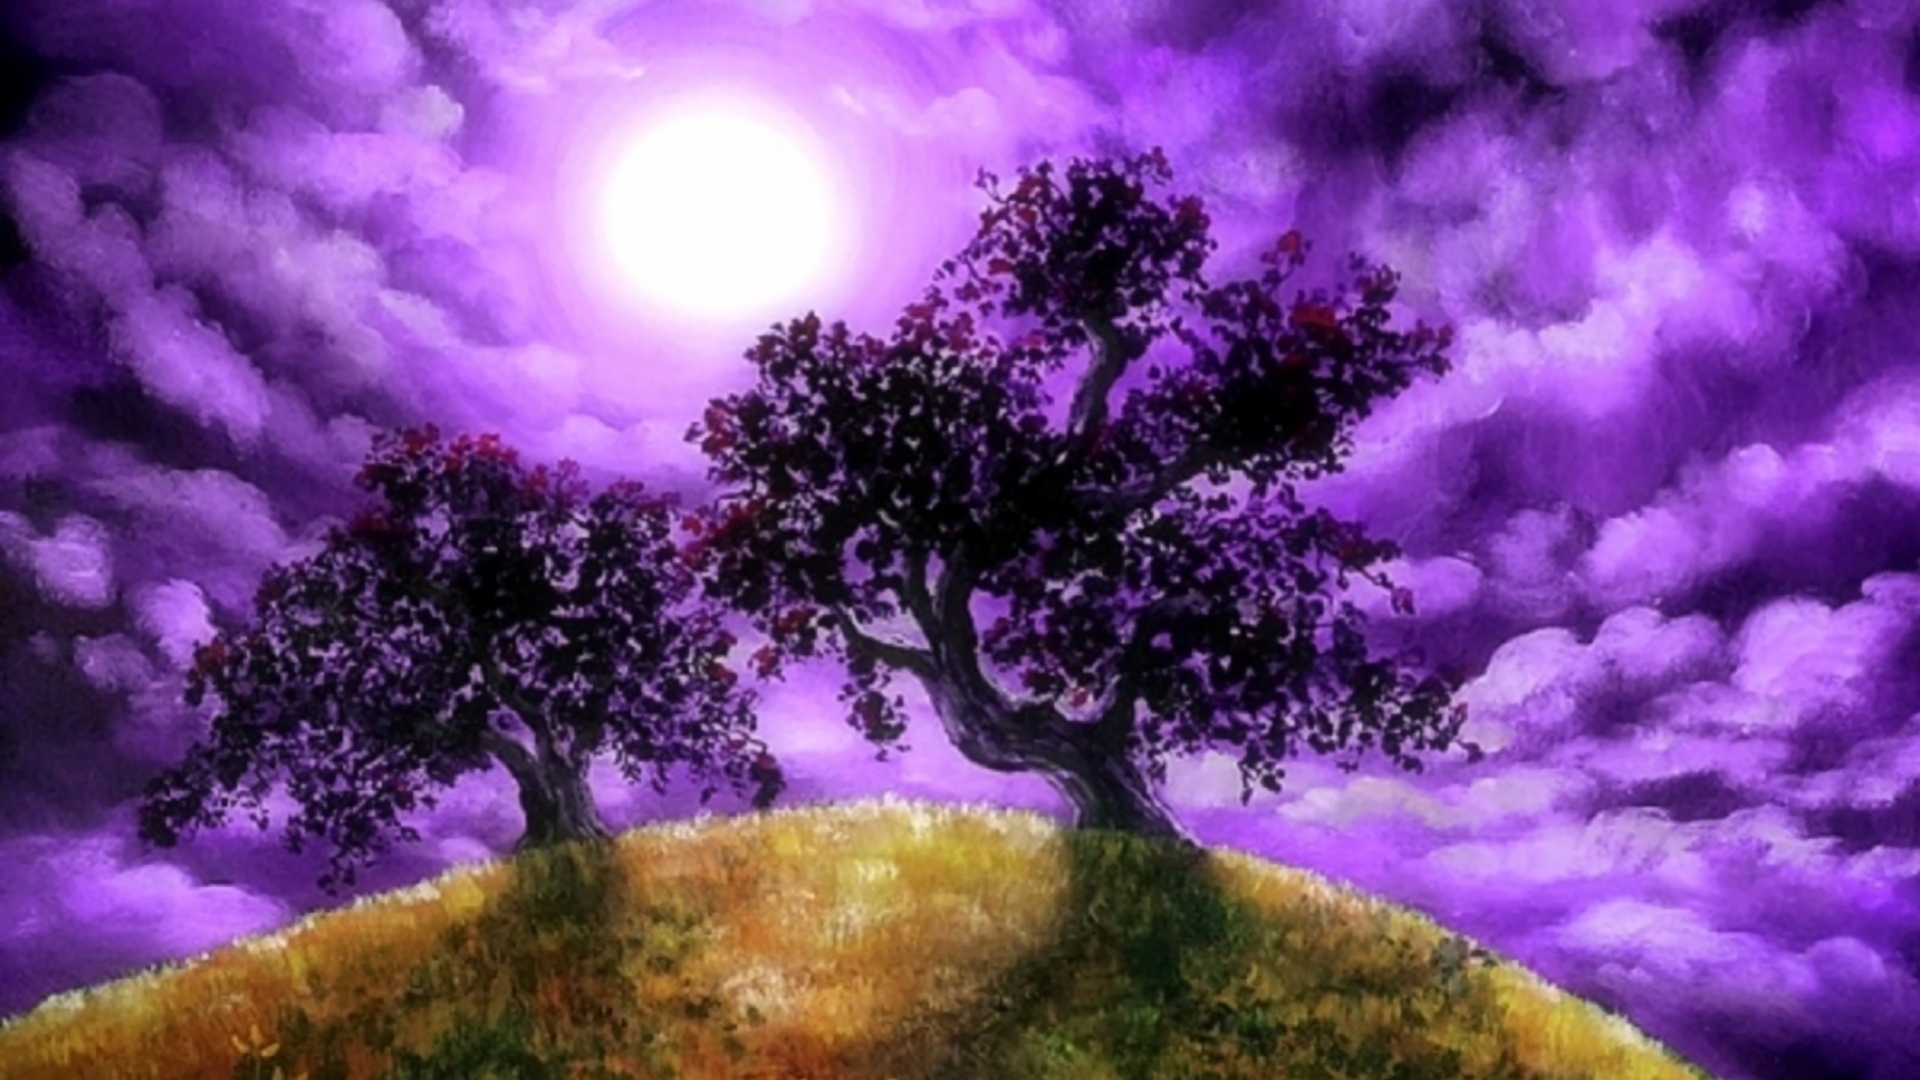 Fantasy landscape hd wallpaper background image for Paesaggi bellissimi per desktop